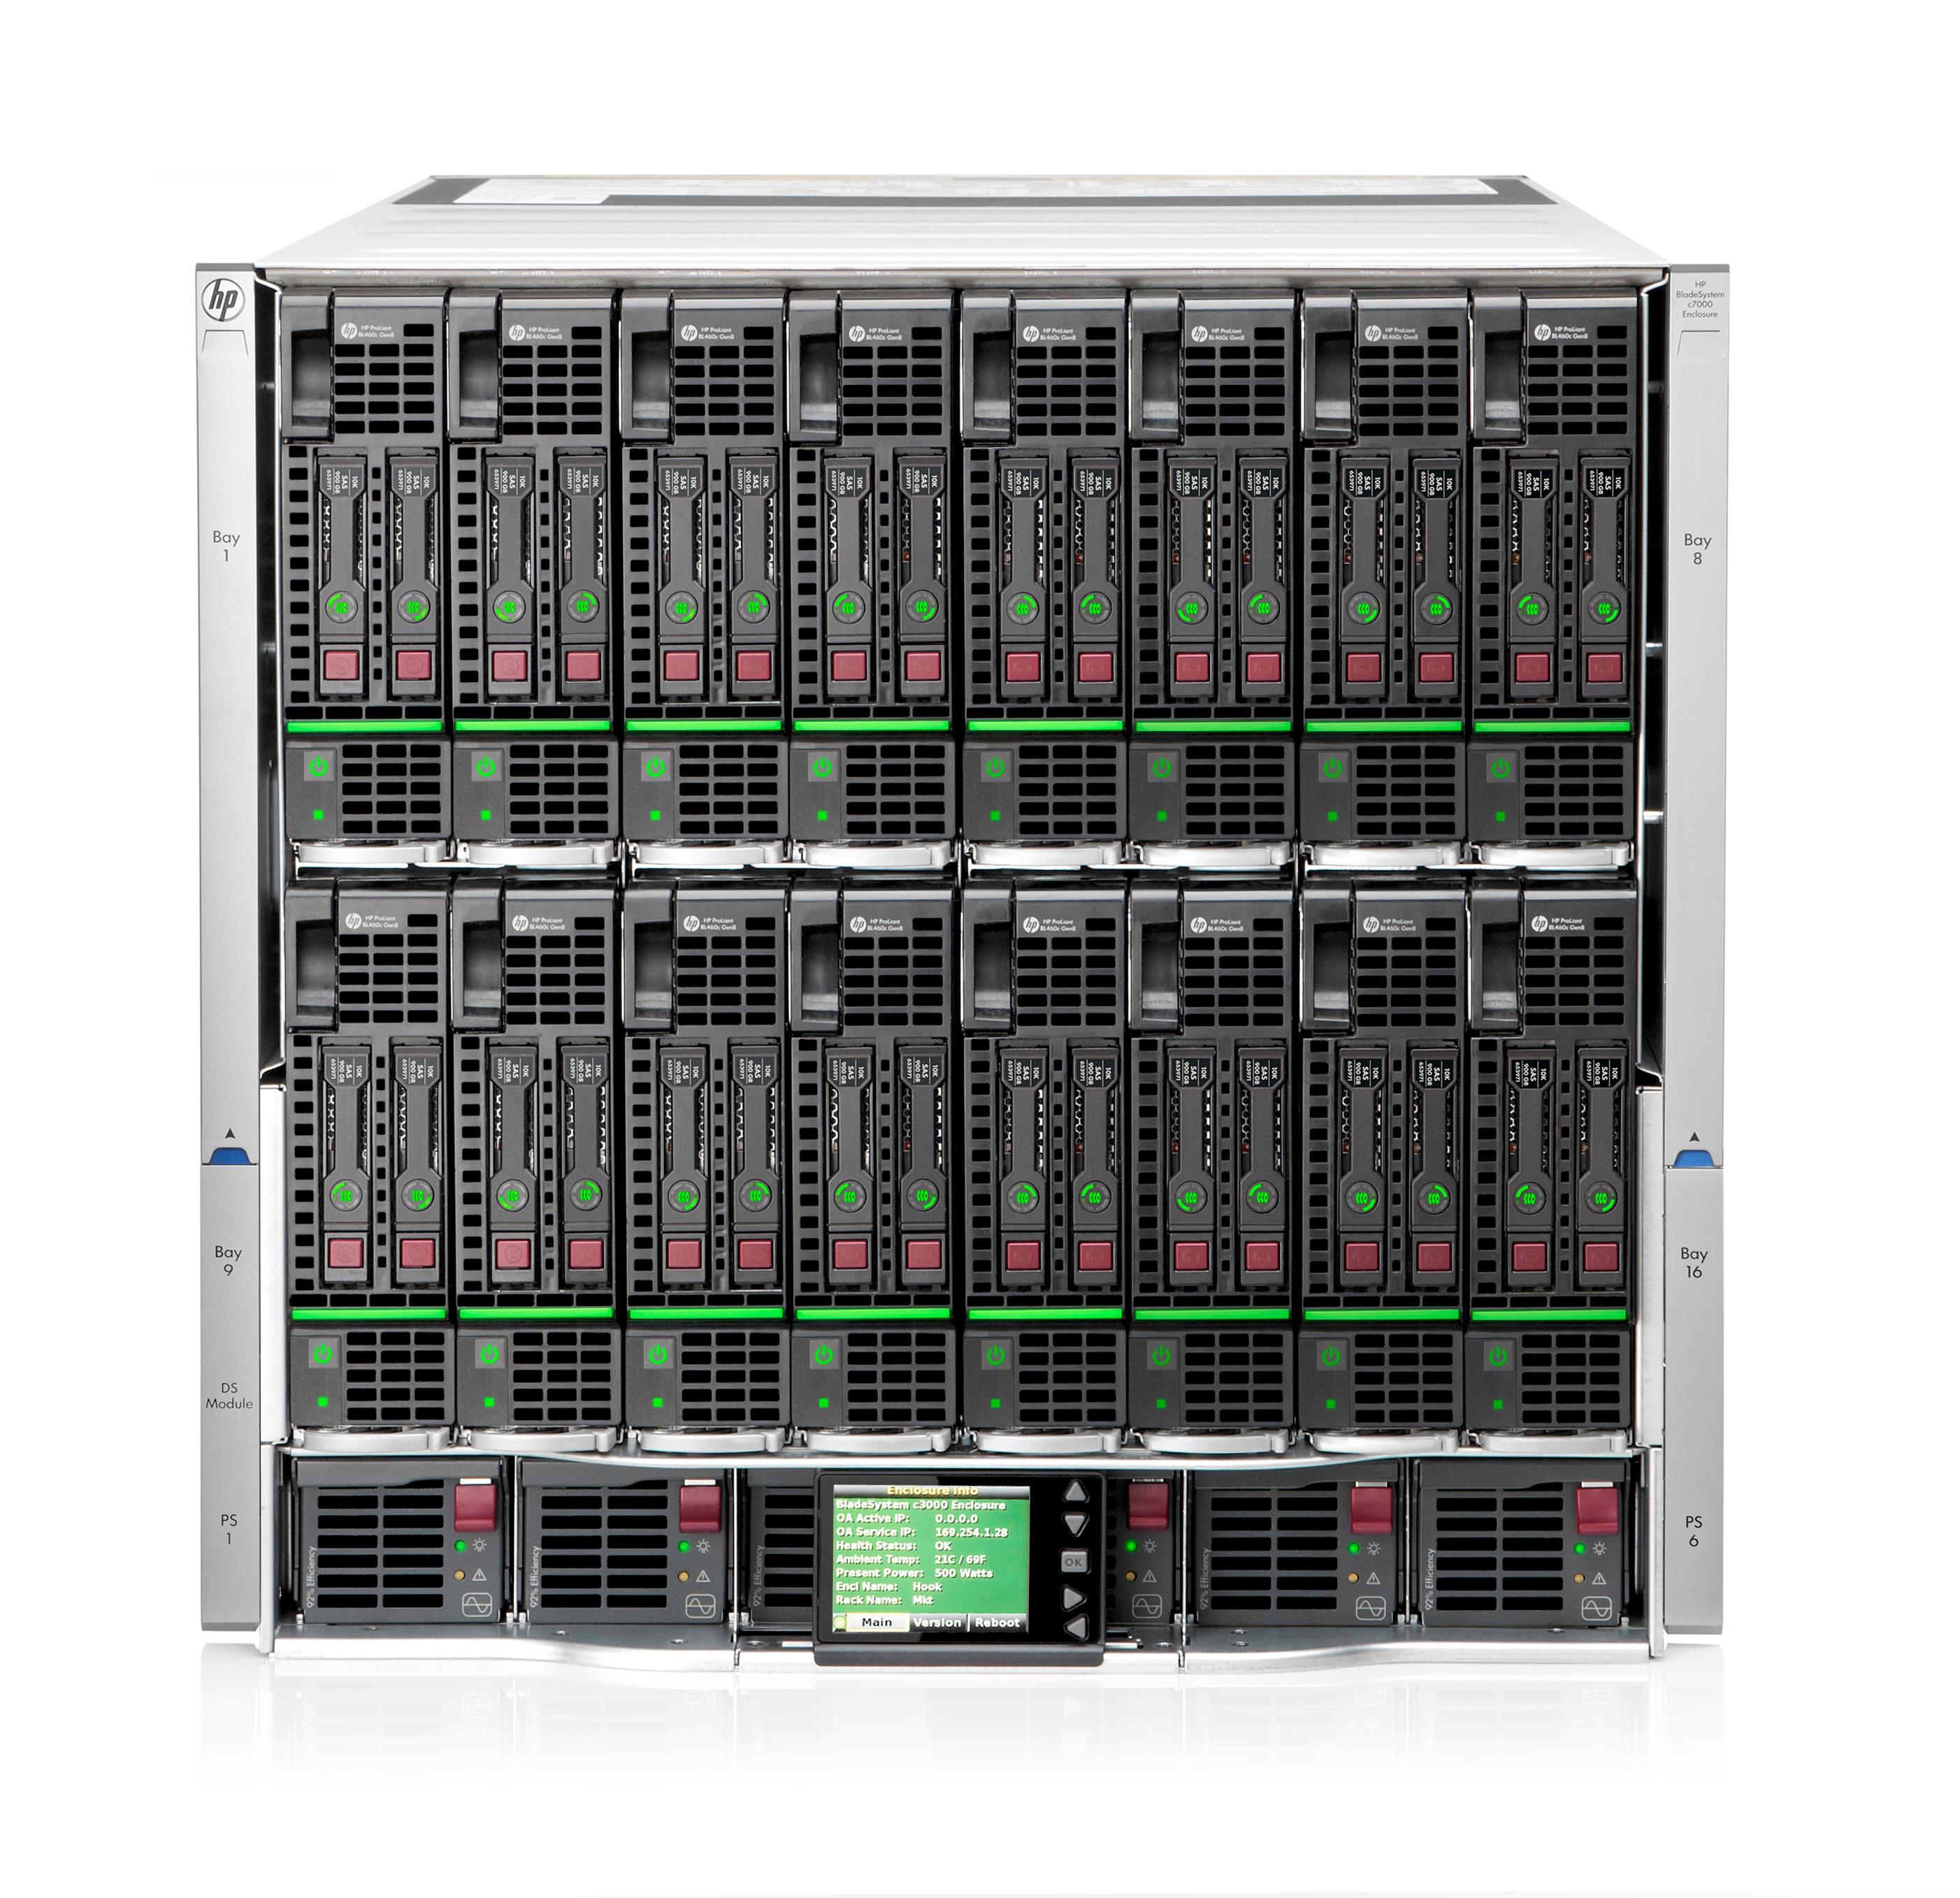 HP BLc7000 Platinum Enclosure with 1 Phase 6 Power Supplies 10 Fans ROHS 16 Insight Control Licences